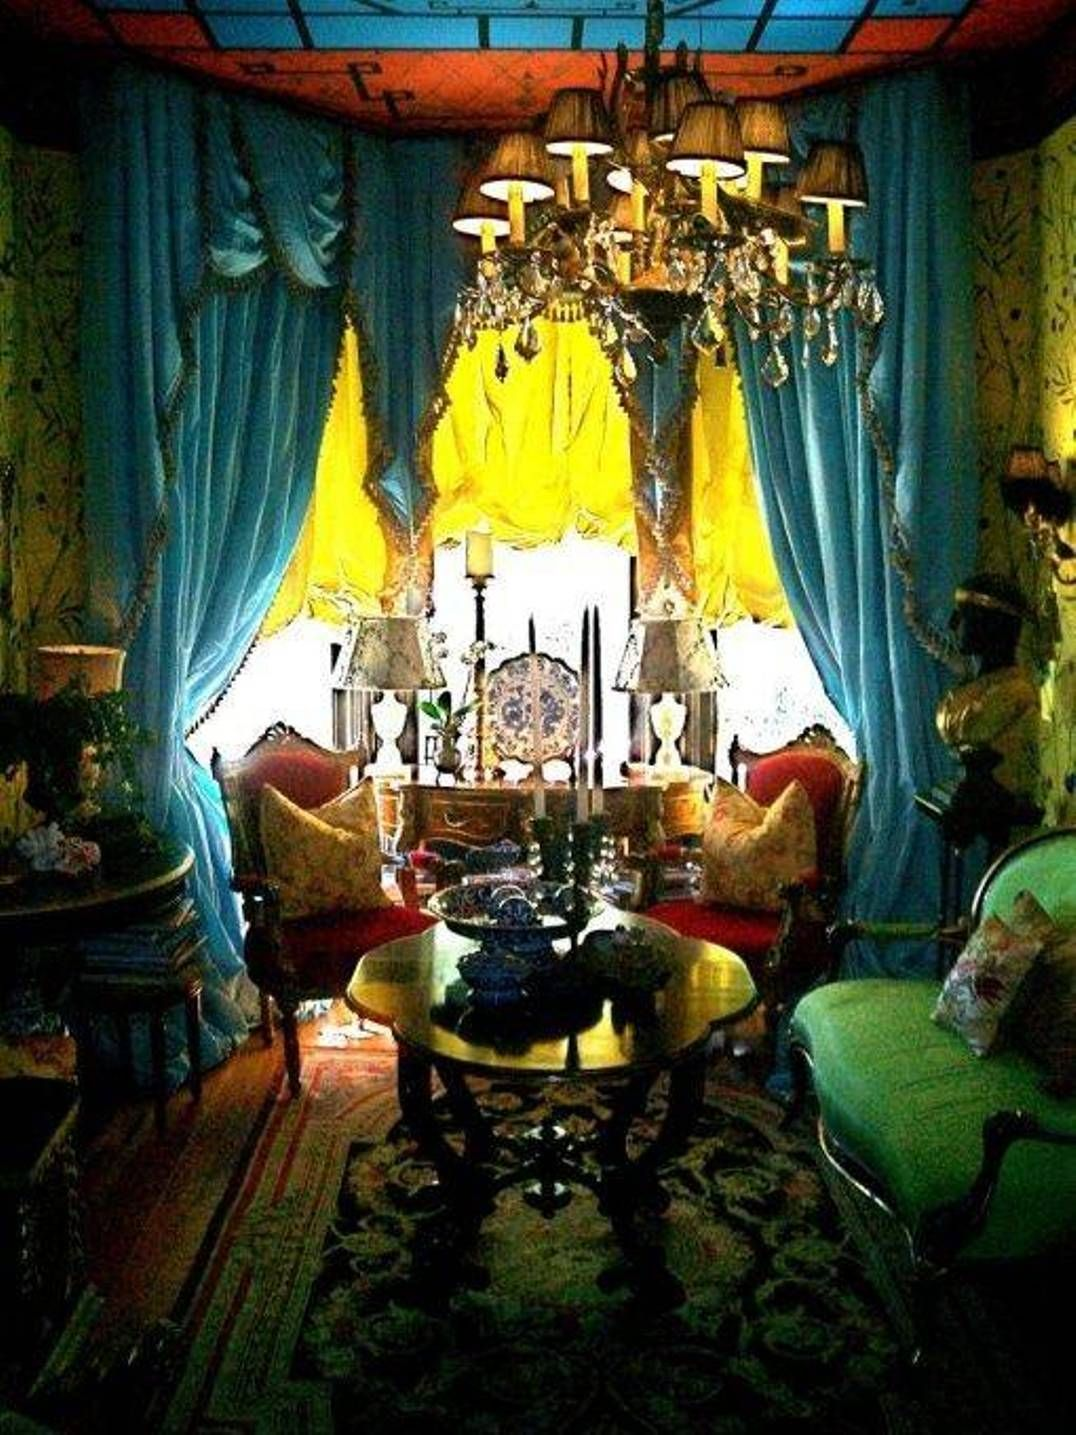 Home design and decor bold interior gypsy decorating for Gypsy designs interior decorating